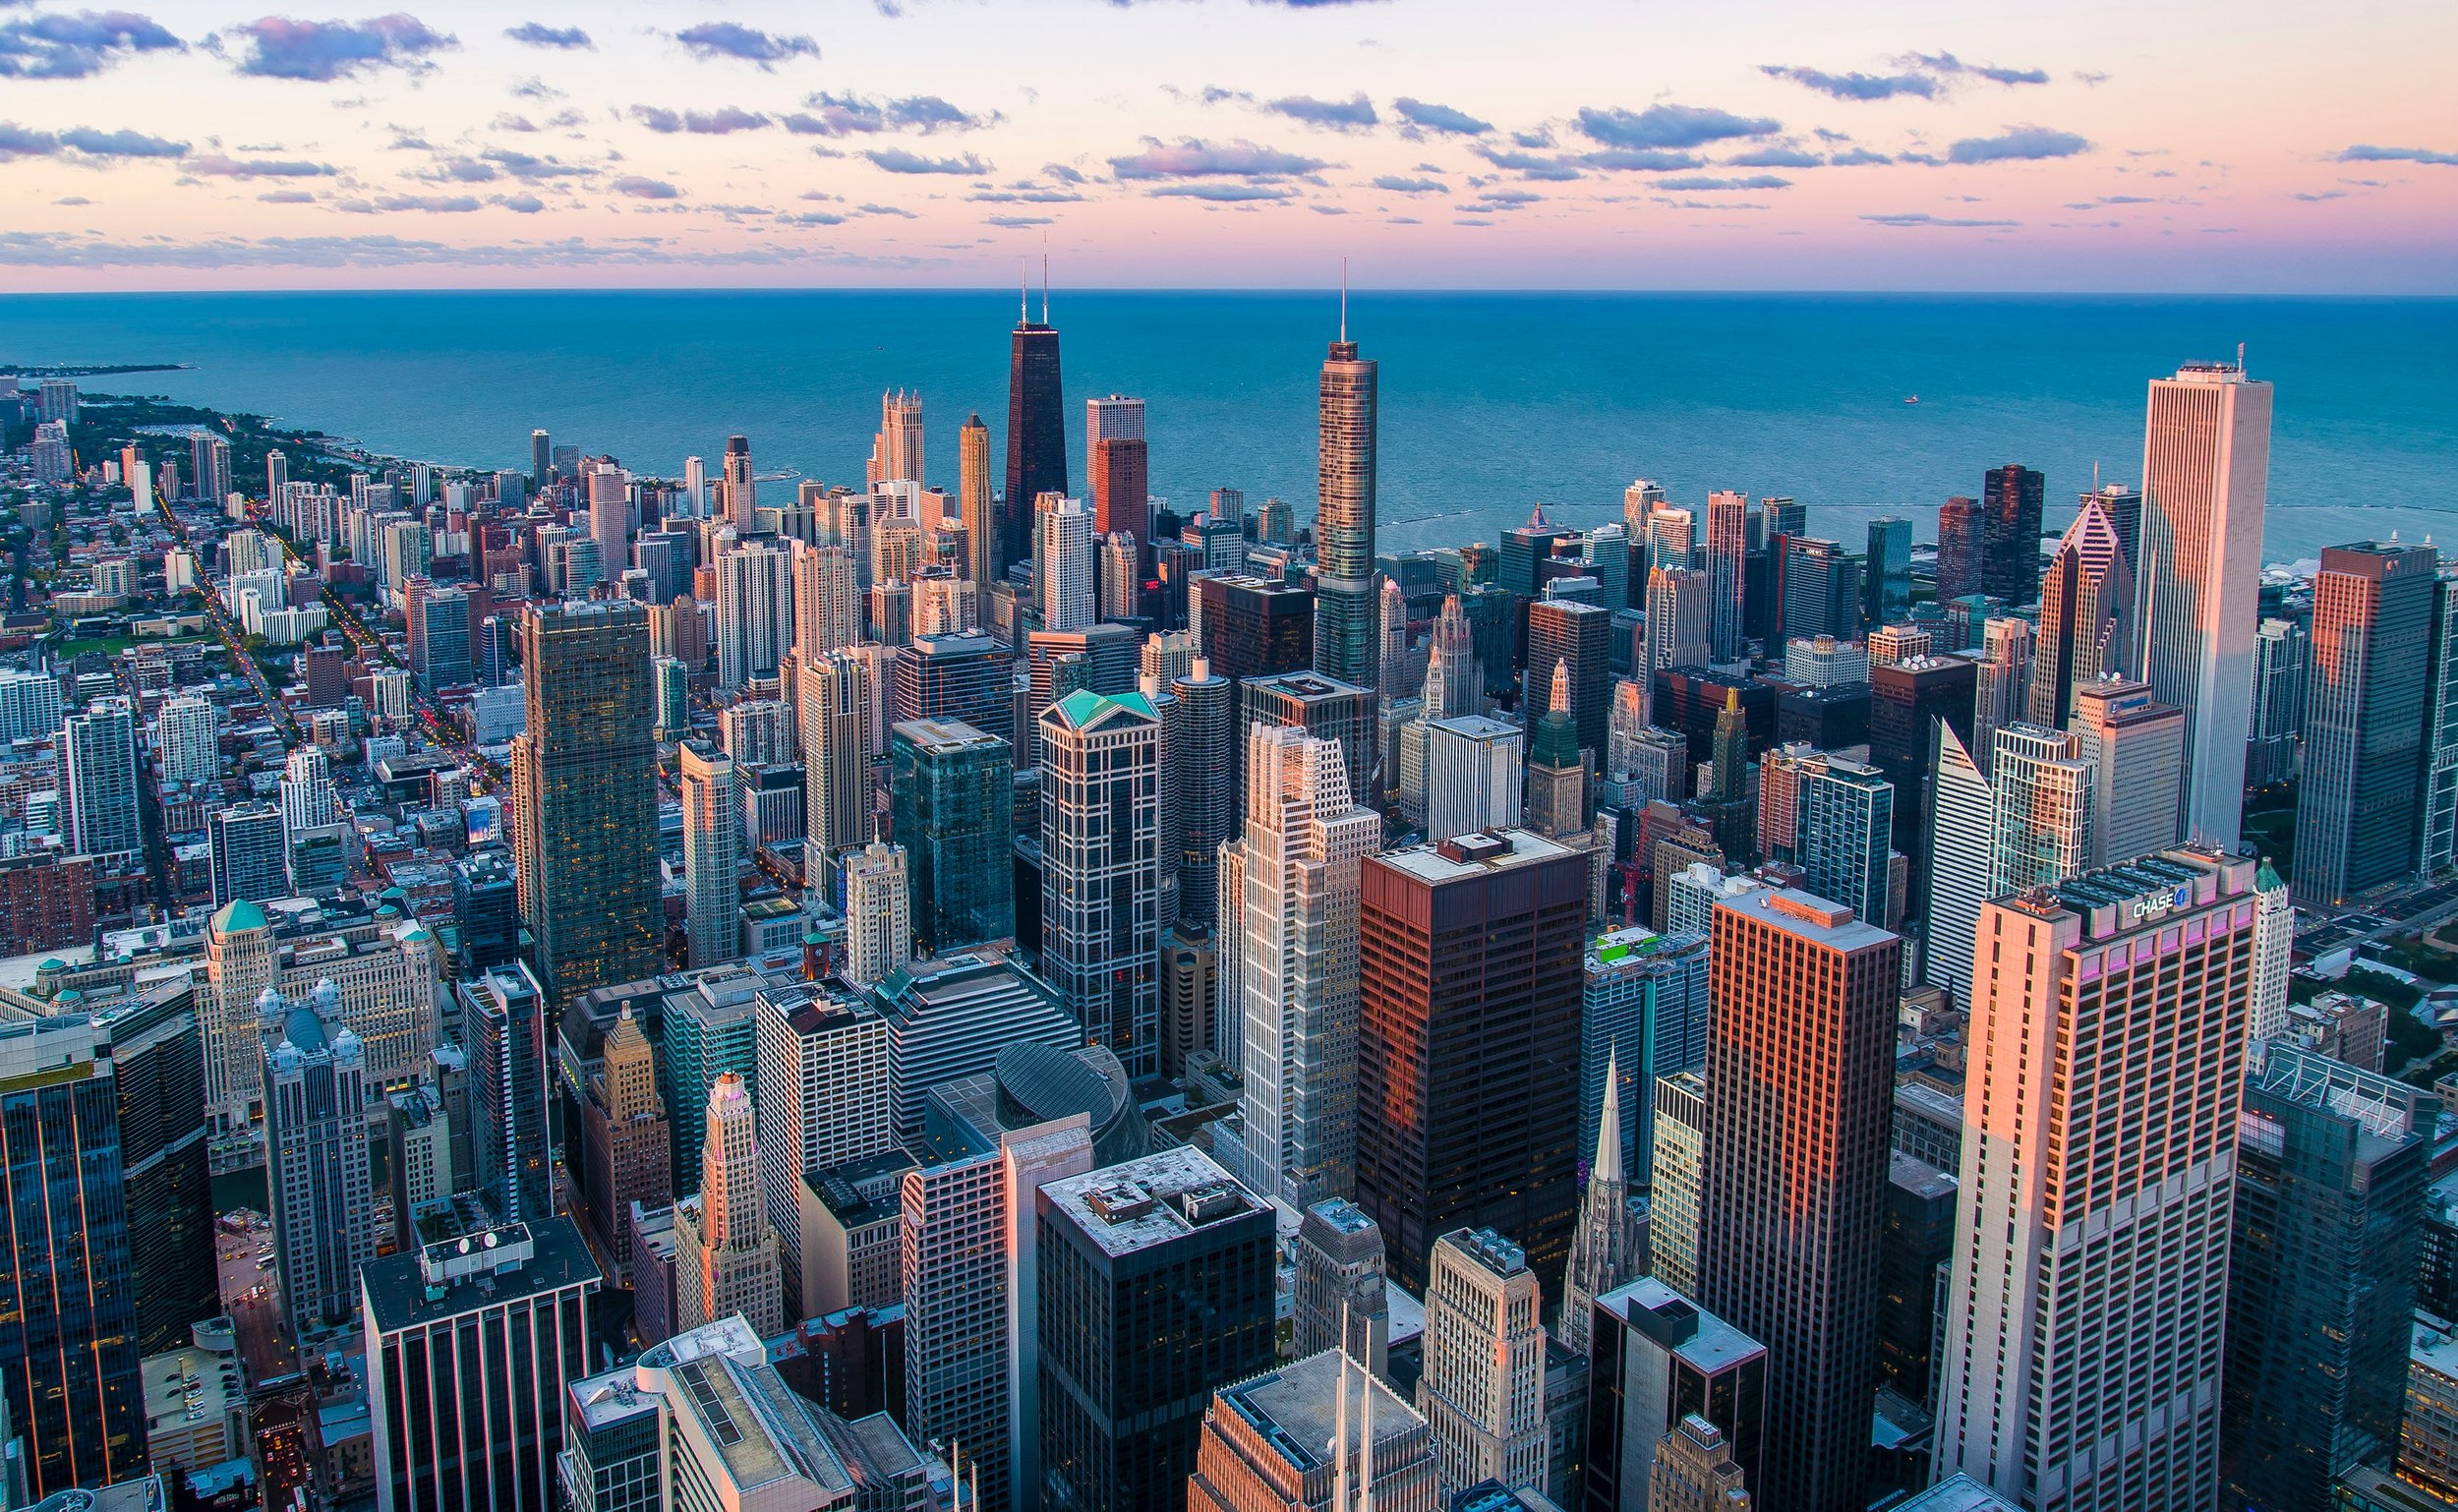 312-things-to-do-in-chicago.jpg